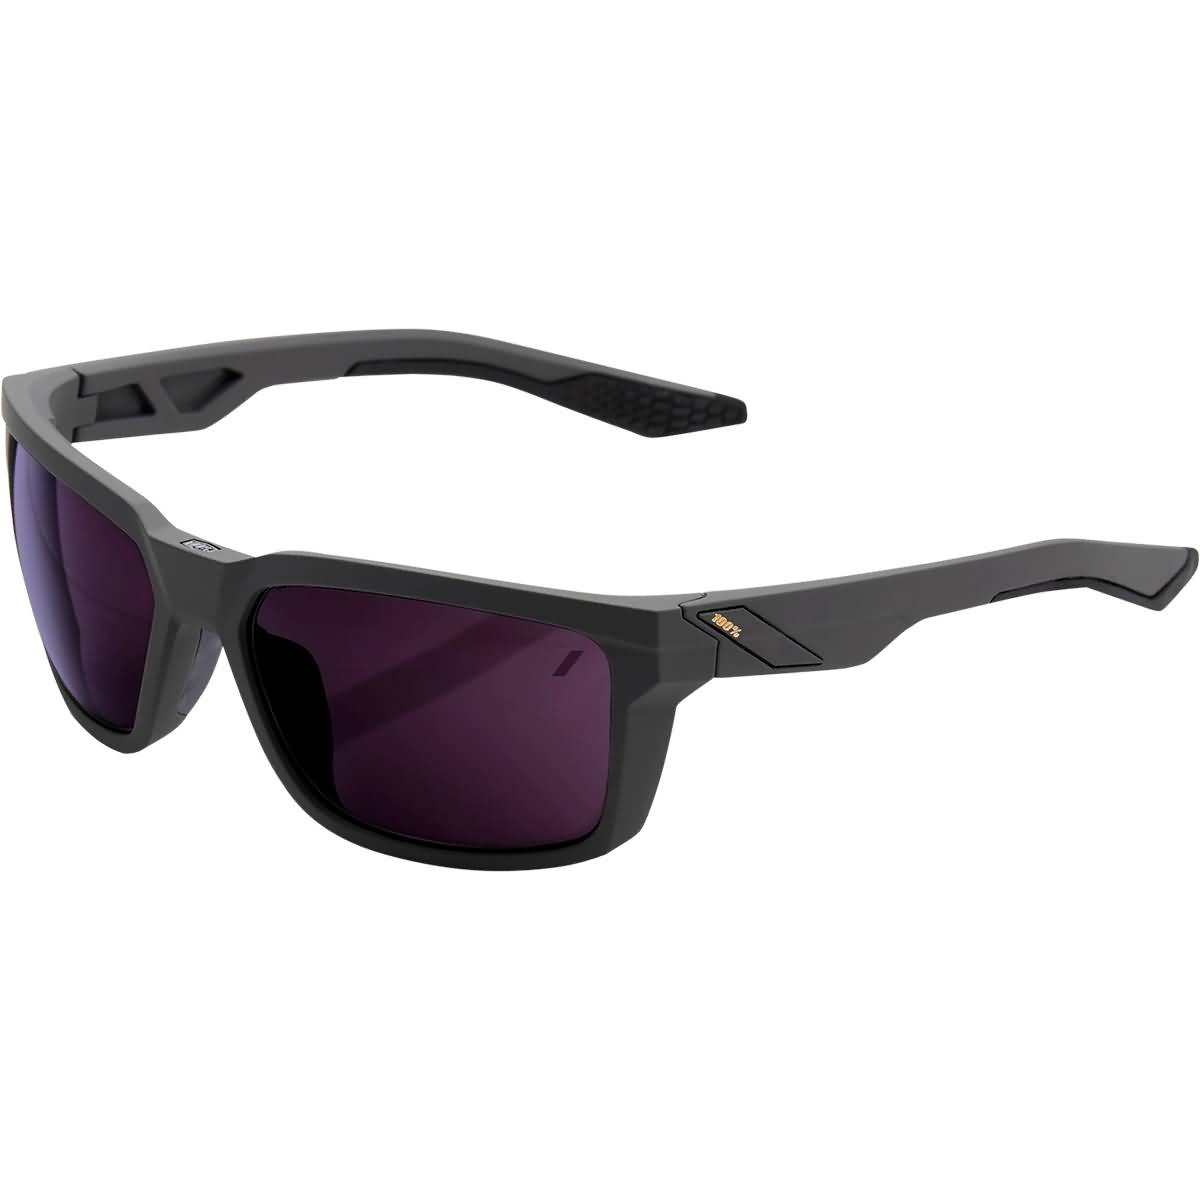 100% Daze Men's Lifestyle Sunglasses-2610